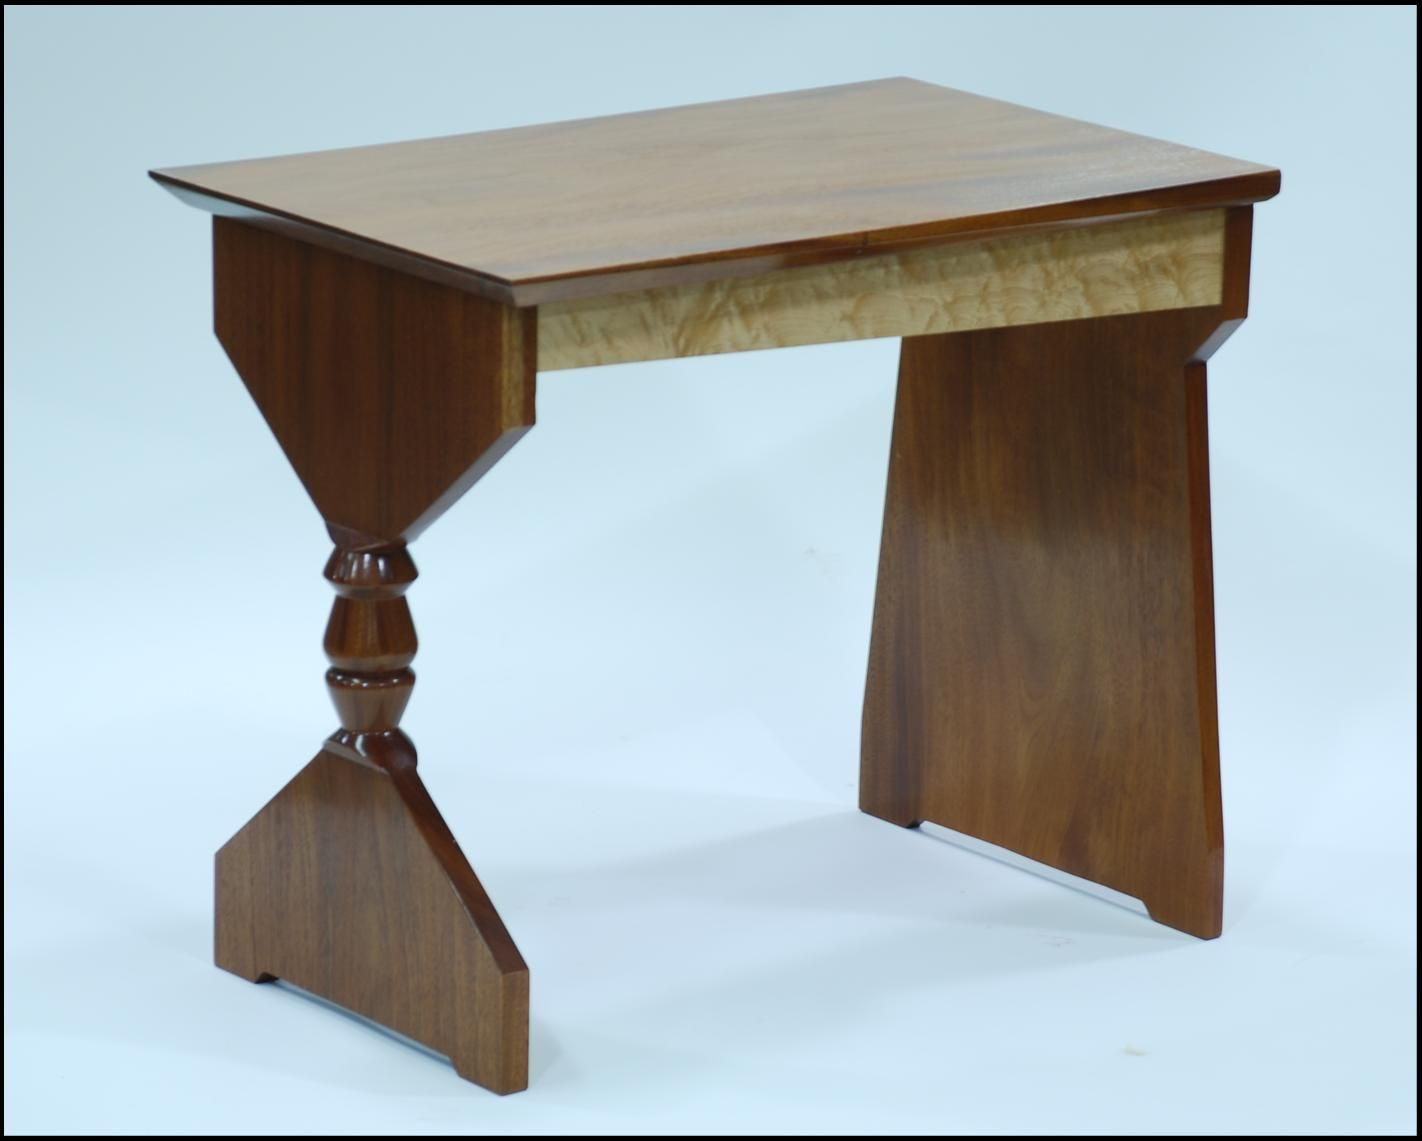 Dan Cominsky- Mahongany Table